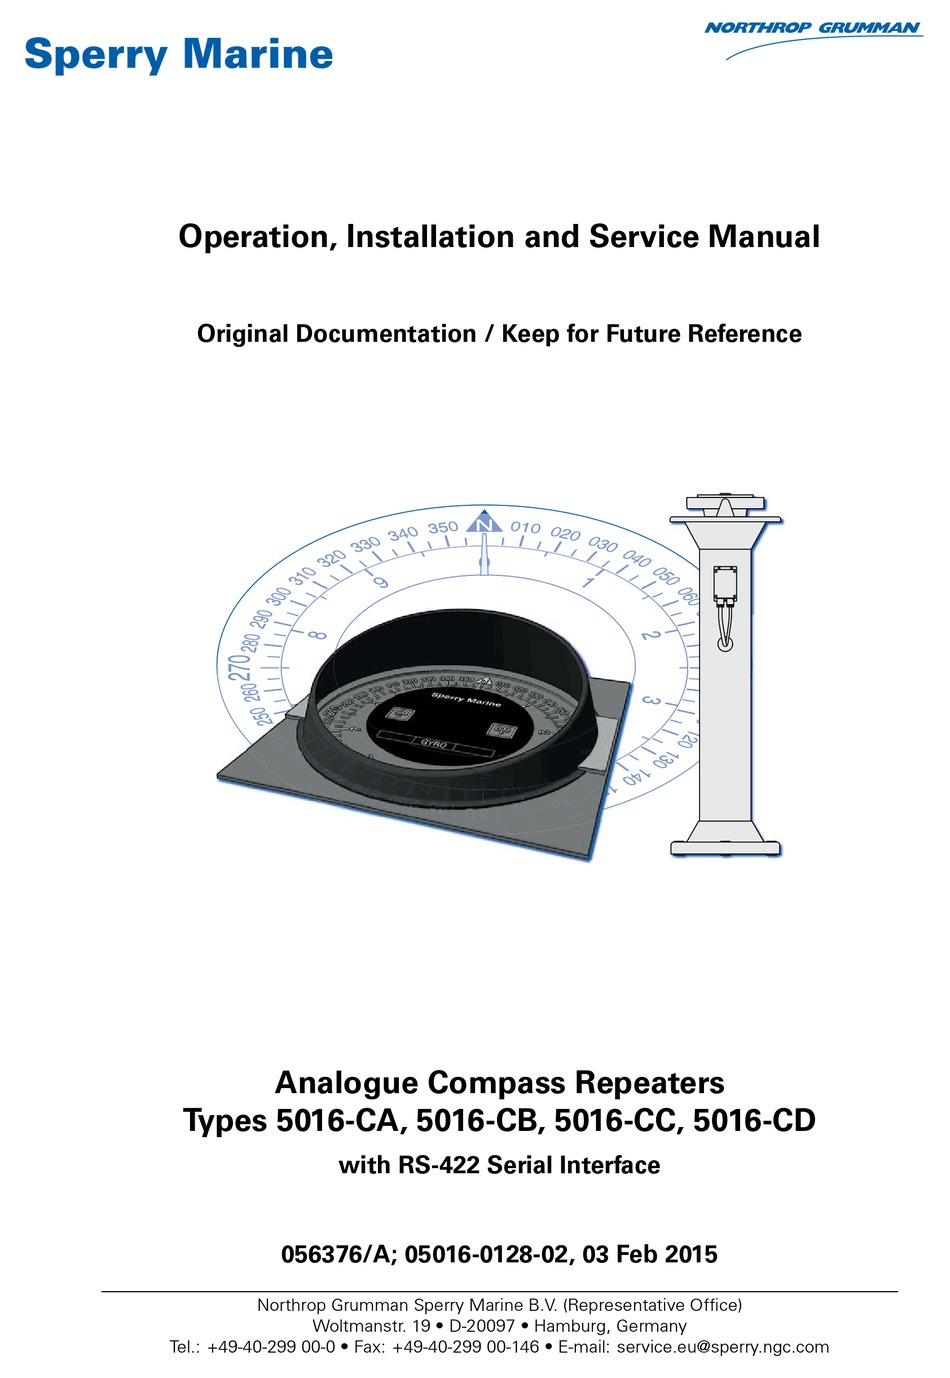 SPERRY MARINE 5016-CA OPERATION, INSTALLAION AND SERVICE MANUAL Pdf  Download   ManualsLib   Sperry Marine Wiring Diagram      ManualsLib